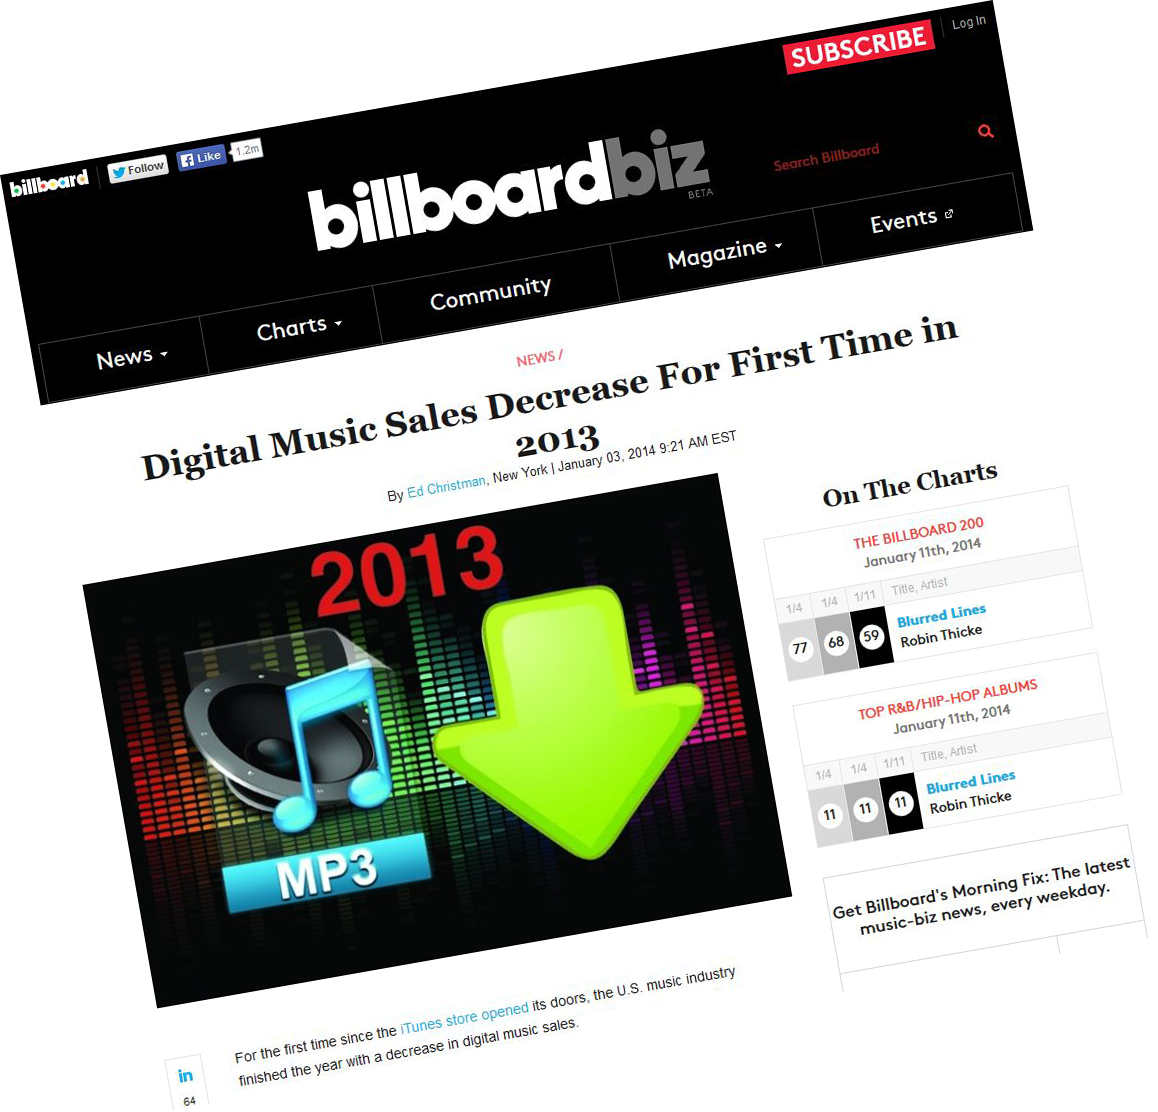 "Billboard: ""Digital Music Sales Decrease For First Time in 2013"""